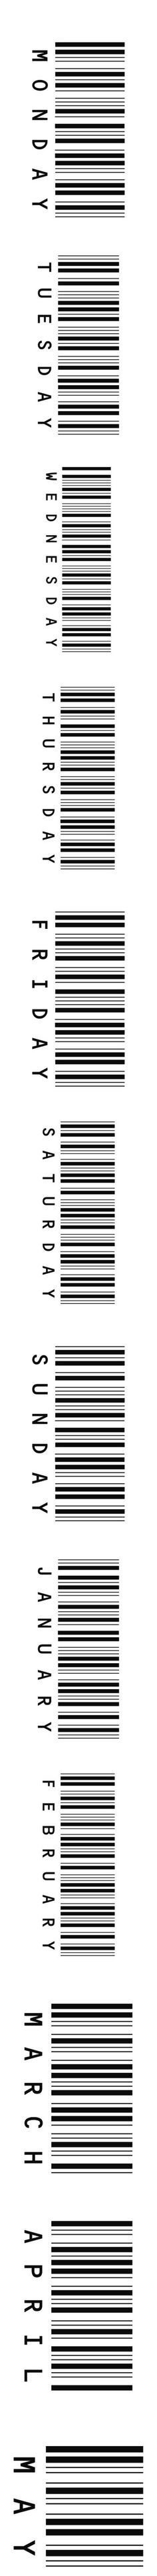 """""""Text Barcodes"""" by meowshoe ❤ liked on Polyvore featuring filler, fillers, text, backgrounds, quotes, words, phrase and saying"""